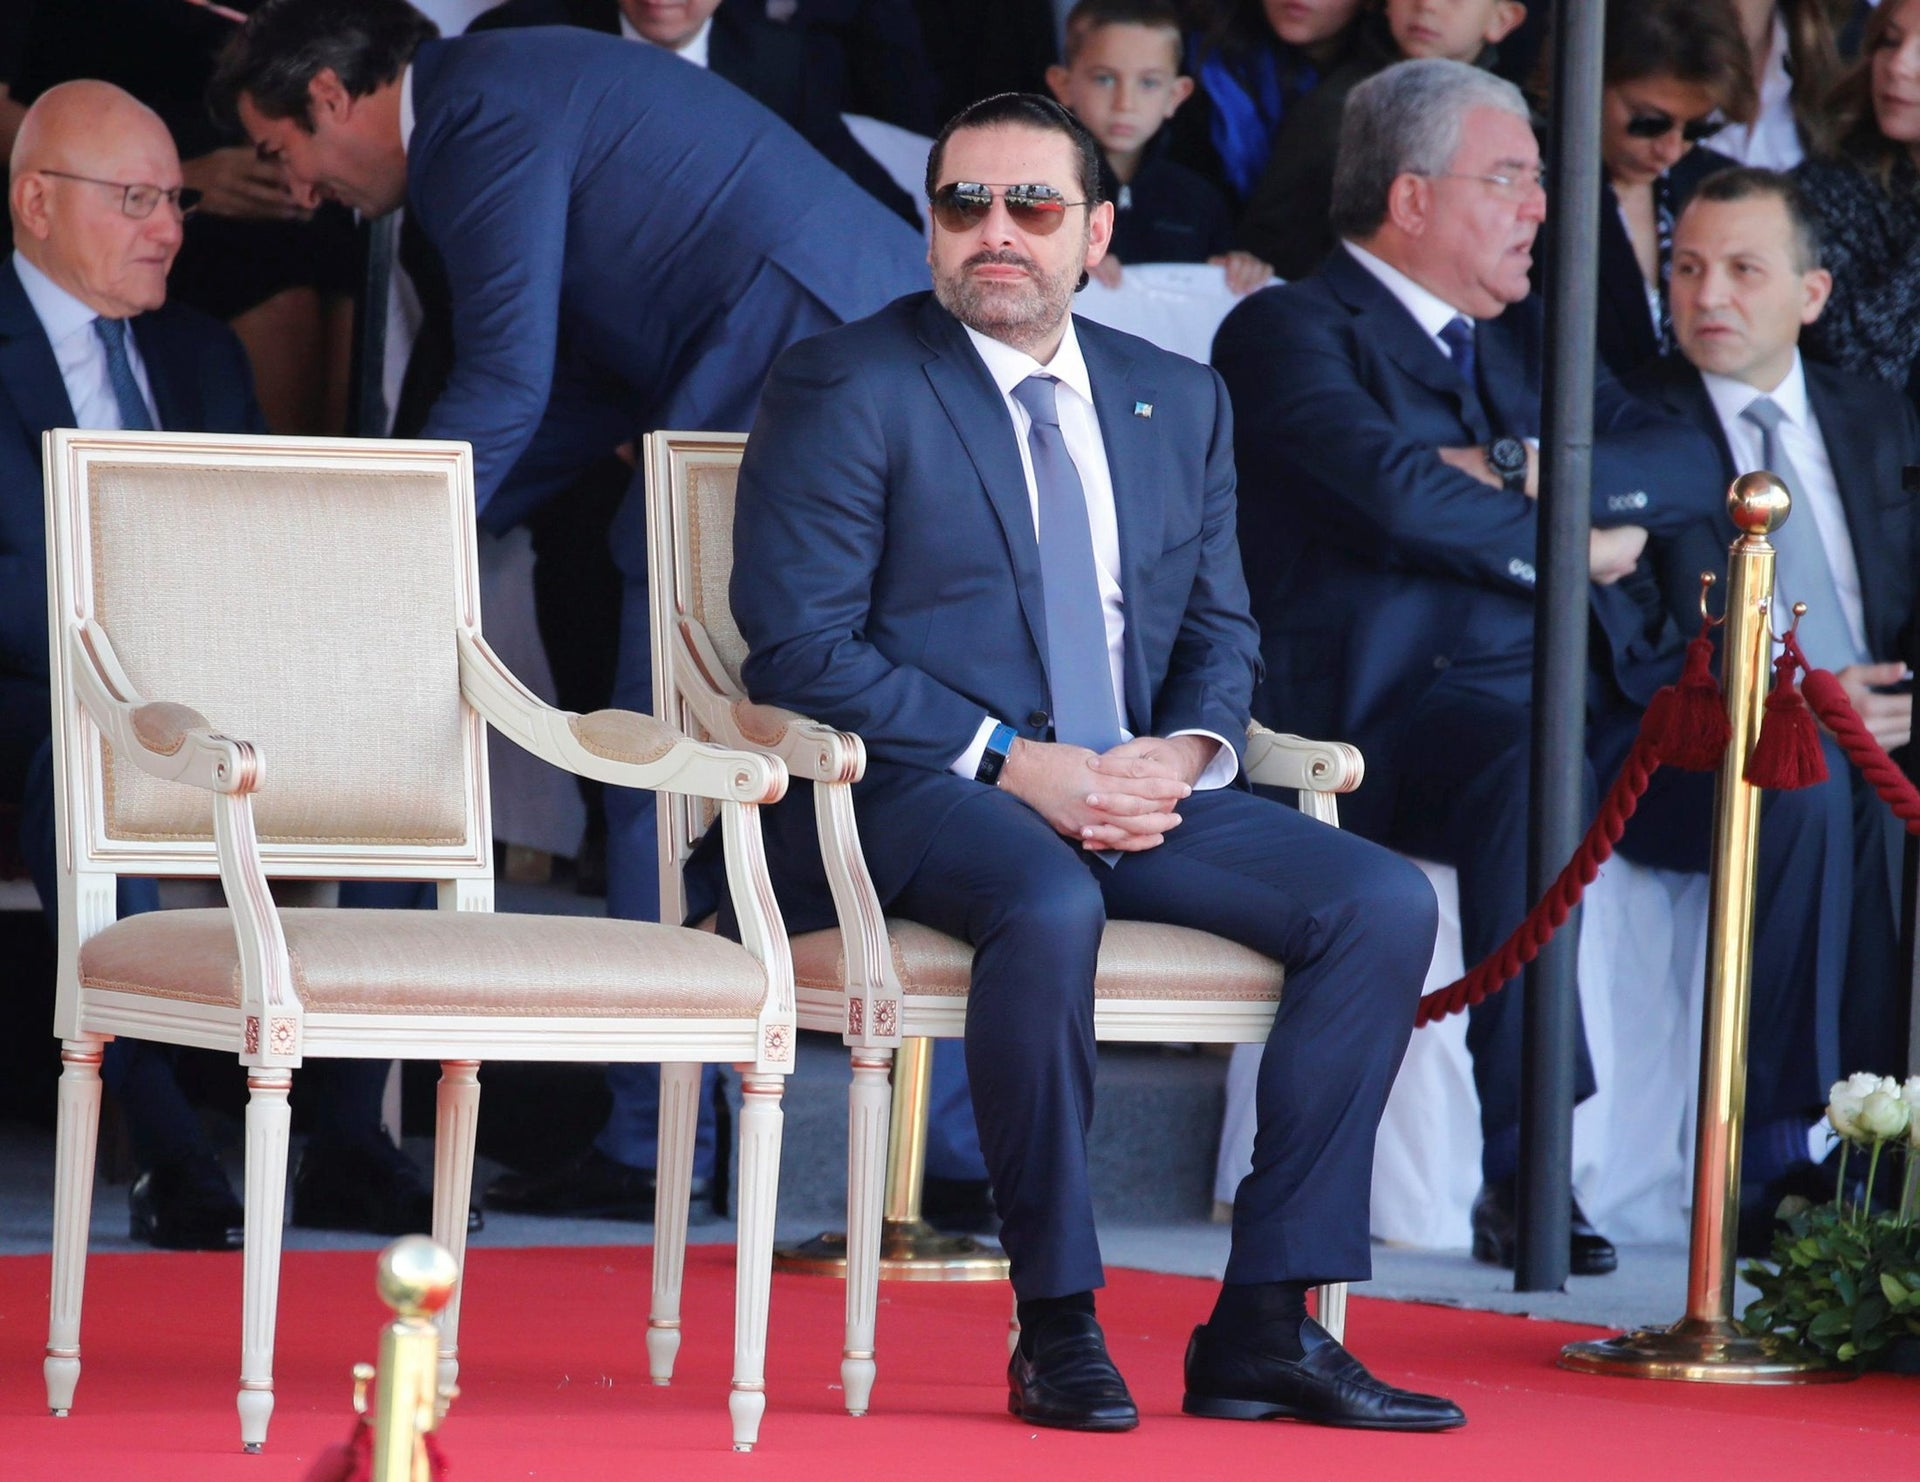 Saad al-Hariri, who announced his resignation as Lebanon's prime minister from Saudi Arabia attends a military parade to celebrate the 74th anniversary of Lebanon's independence in downtown Beirut, Lebanon November 22, 2017.